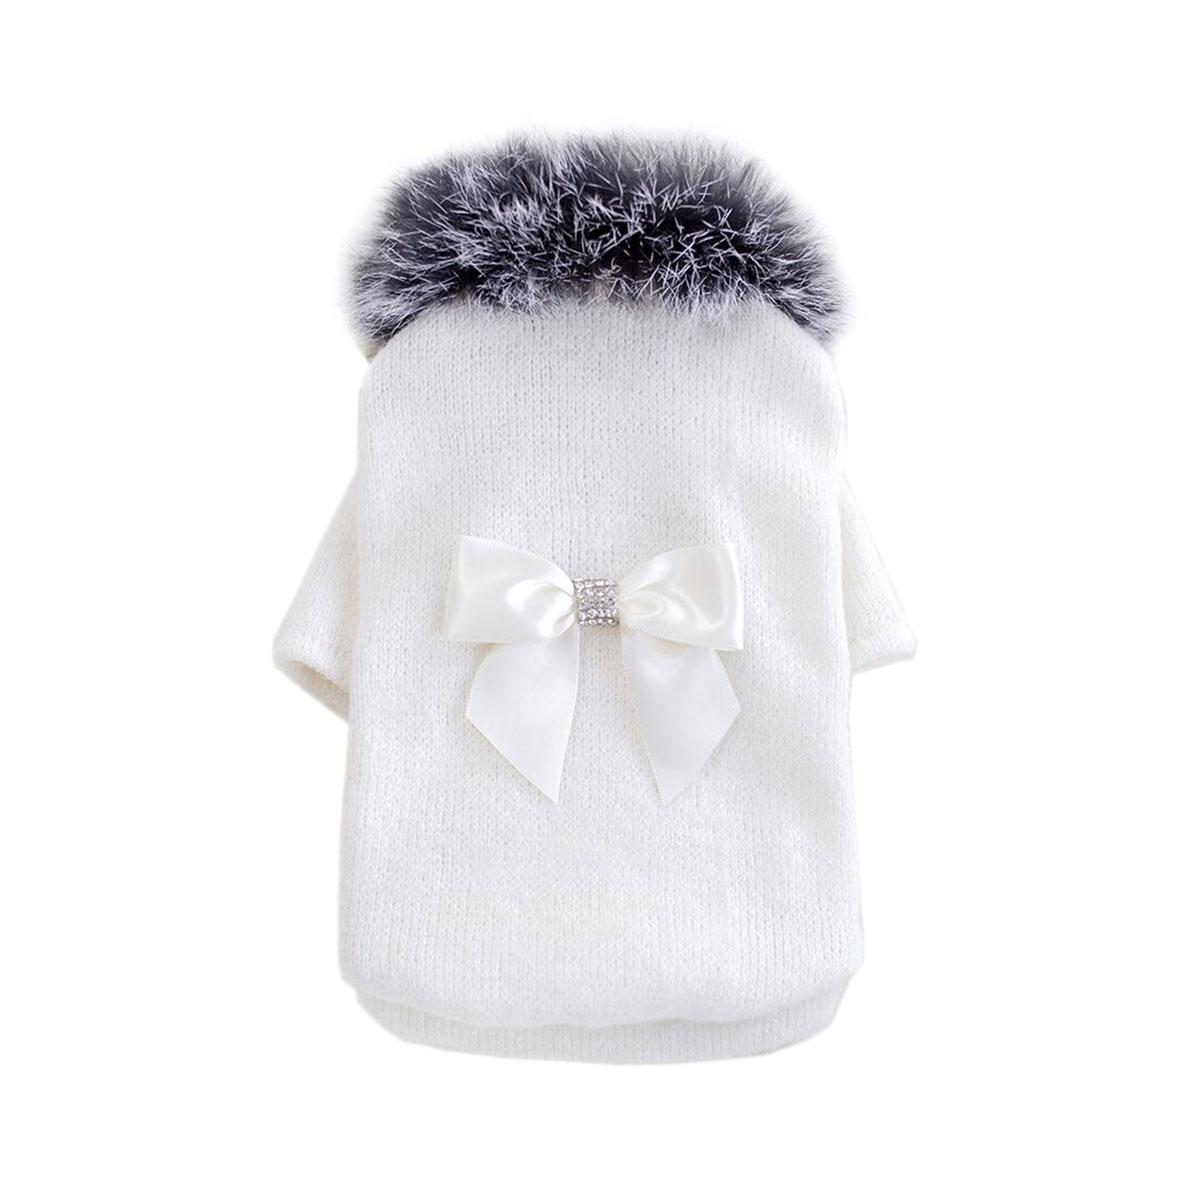 High Society Dog Sweater by Hello Doggie - White